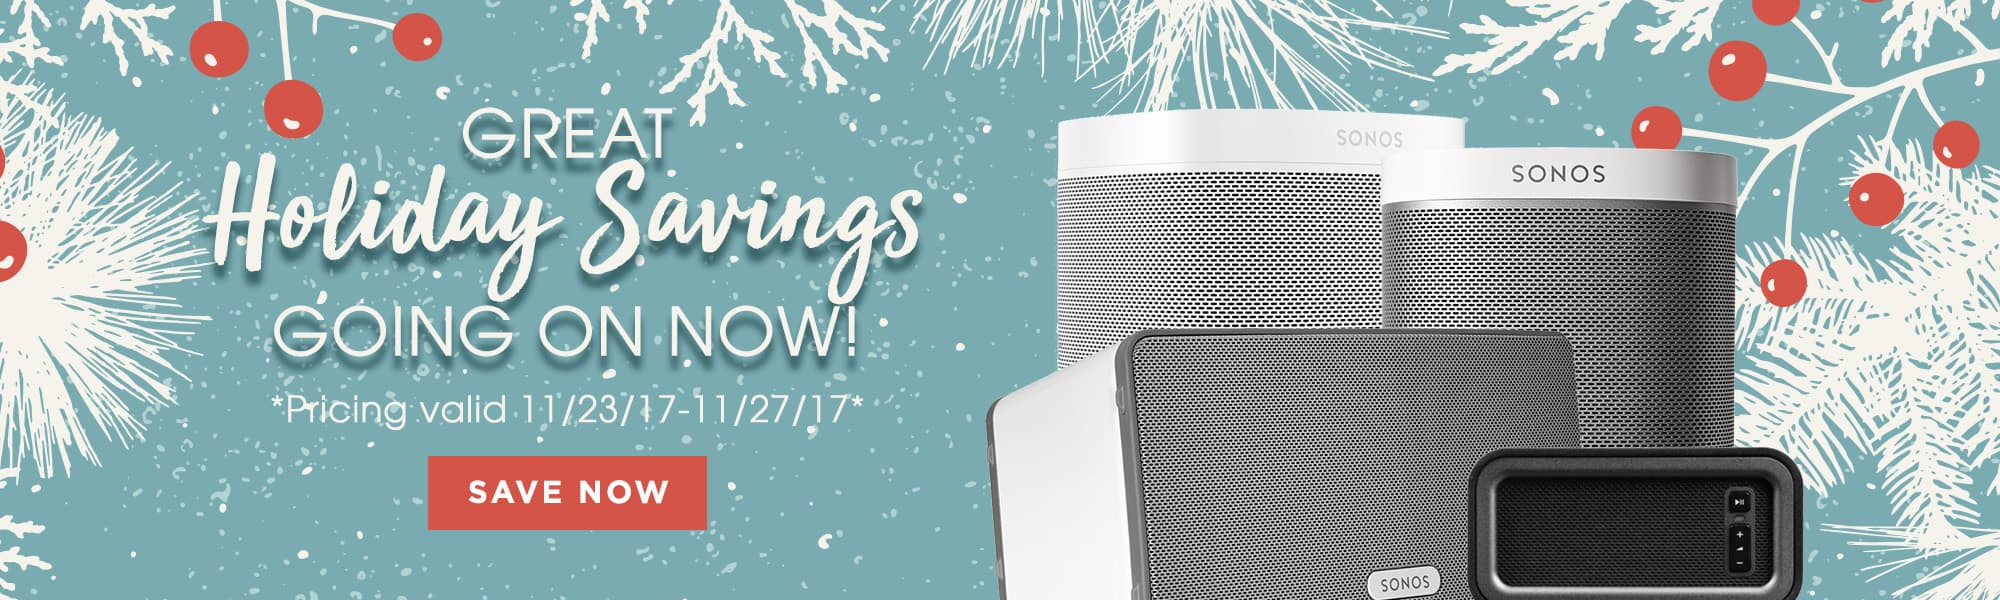 Great Holiday Savings going on Now!